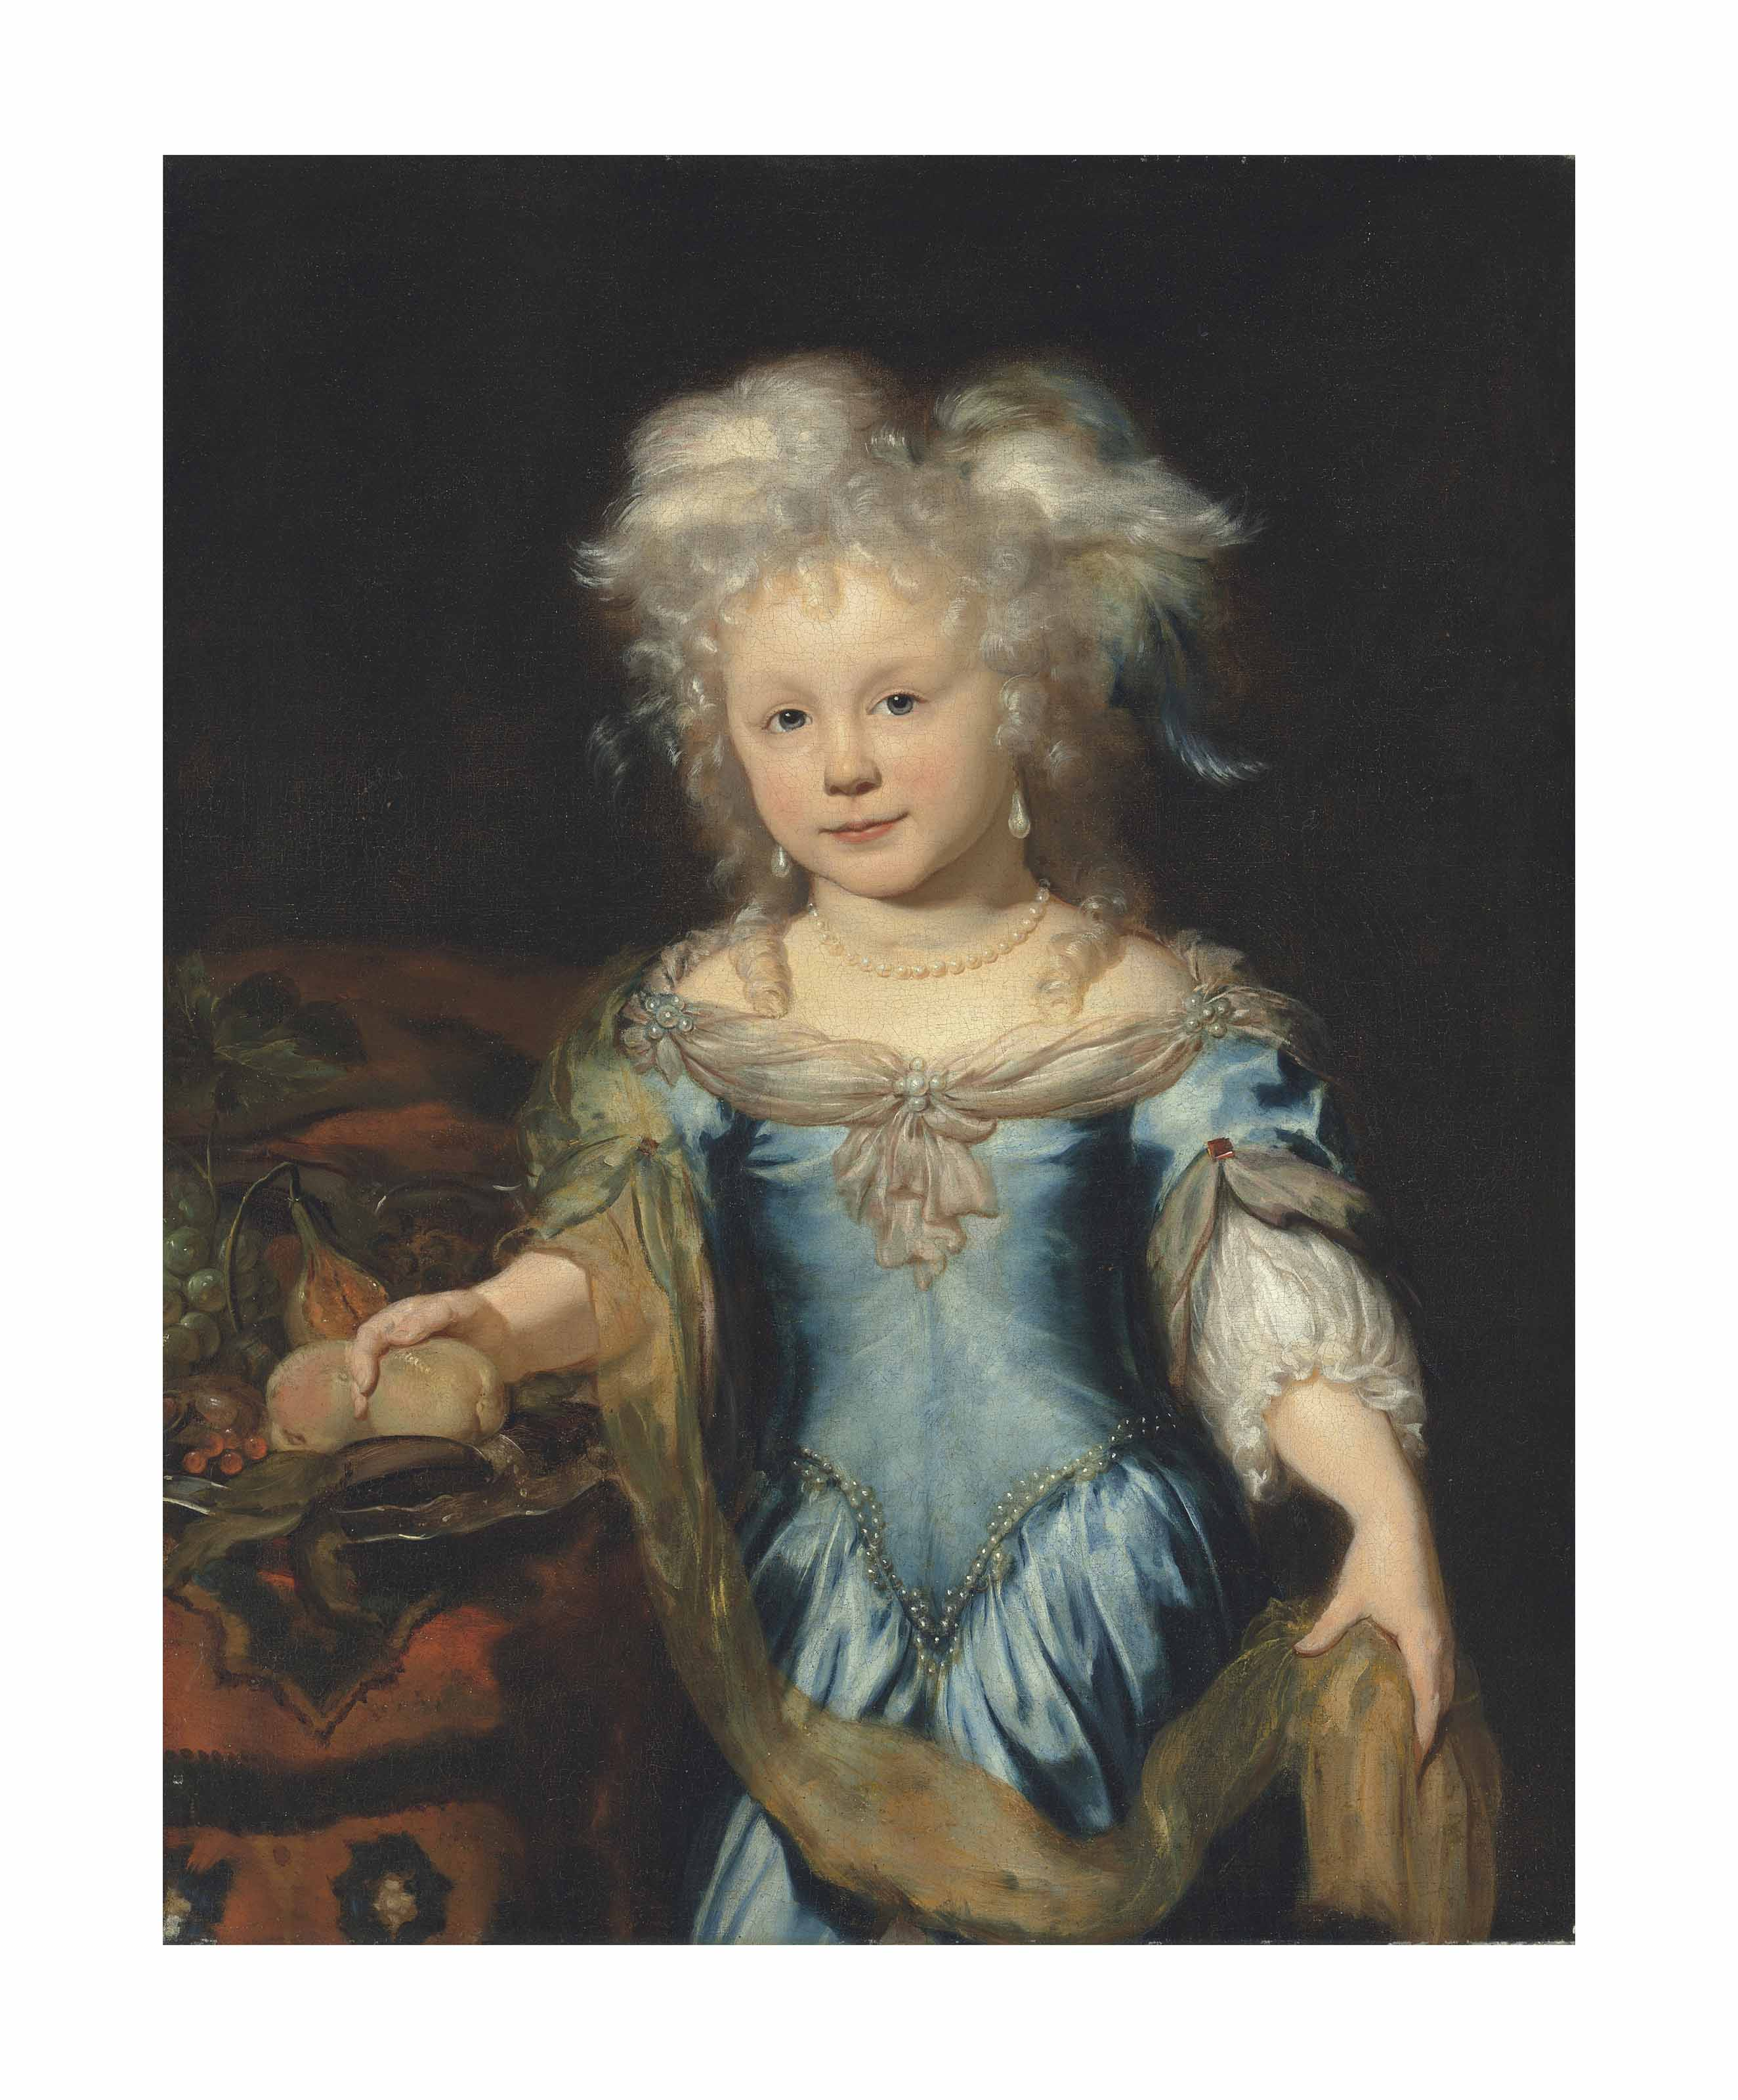 Portrait of a girl, three-quarter-length, in a blue dress by a fruit bowl on a draped table